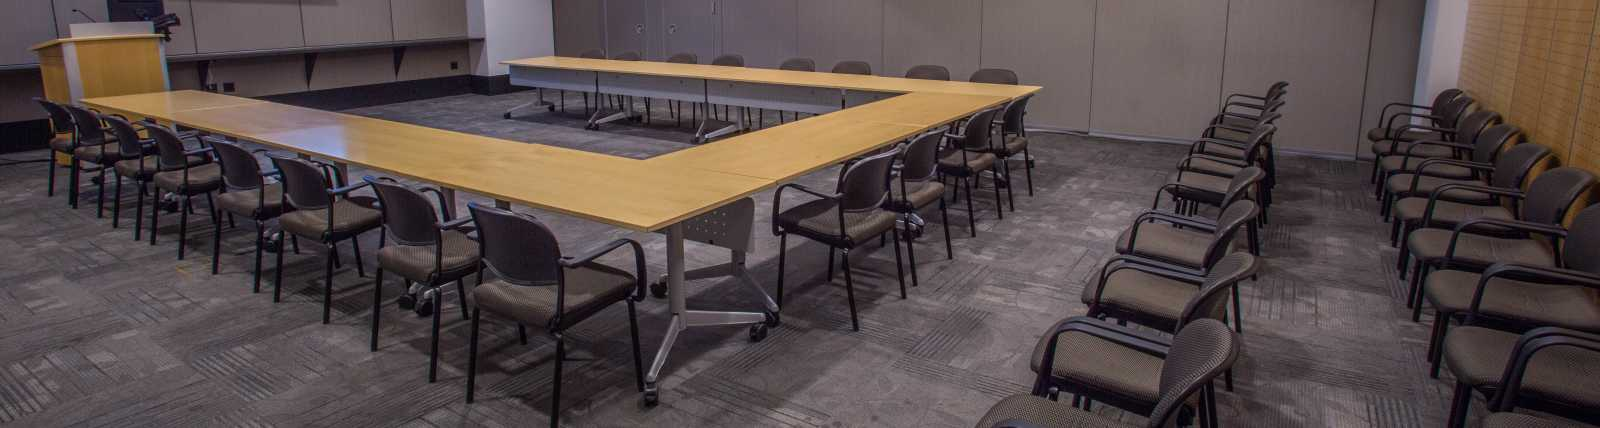 Beijing conference room in a u-shape plus audience seating